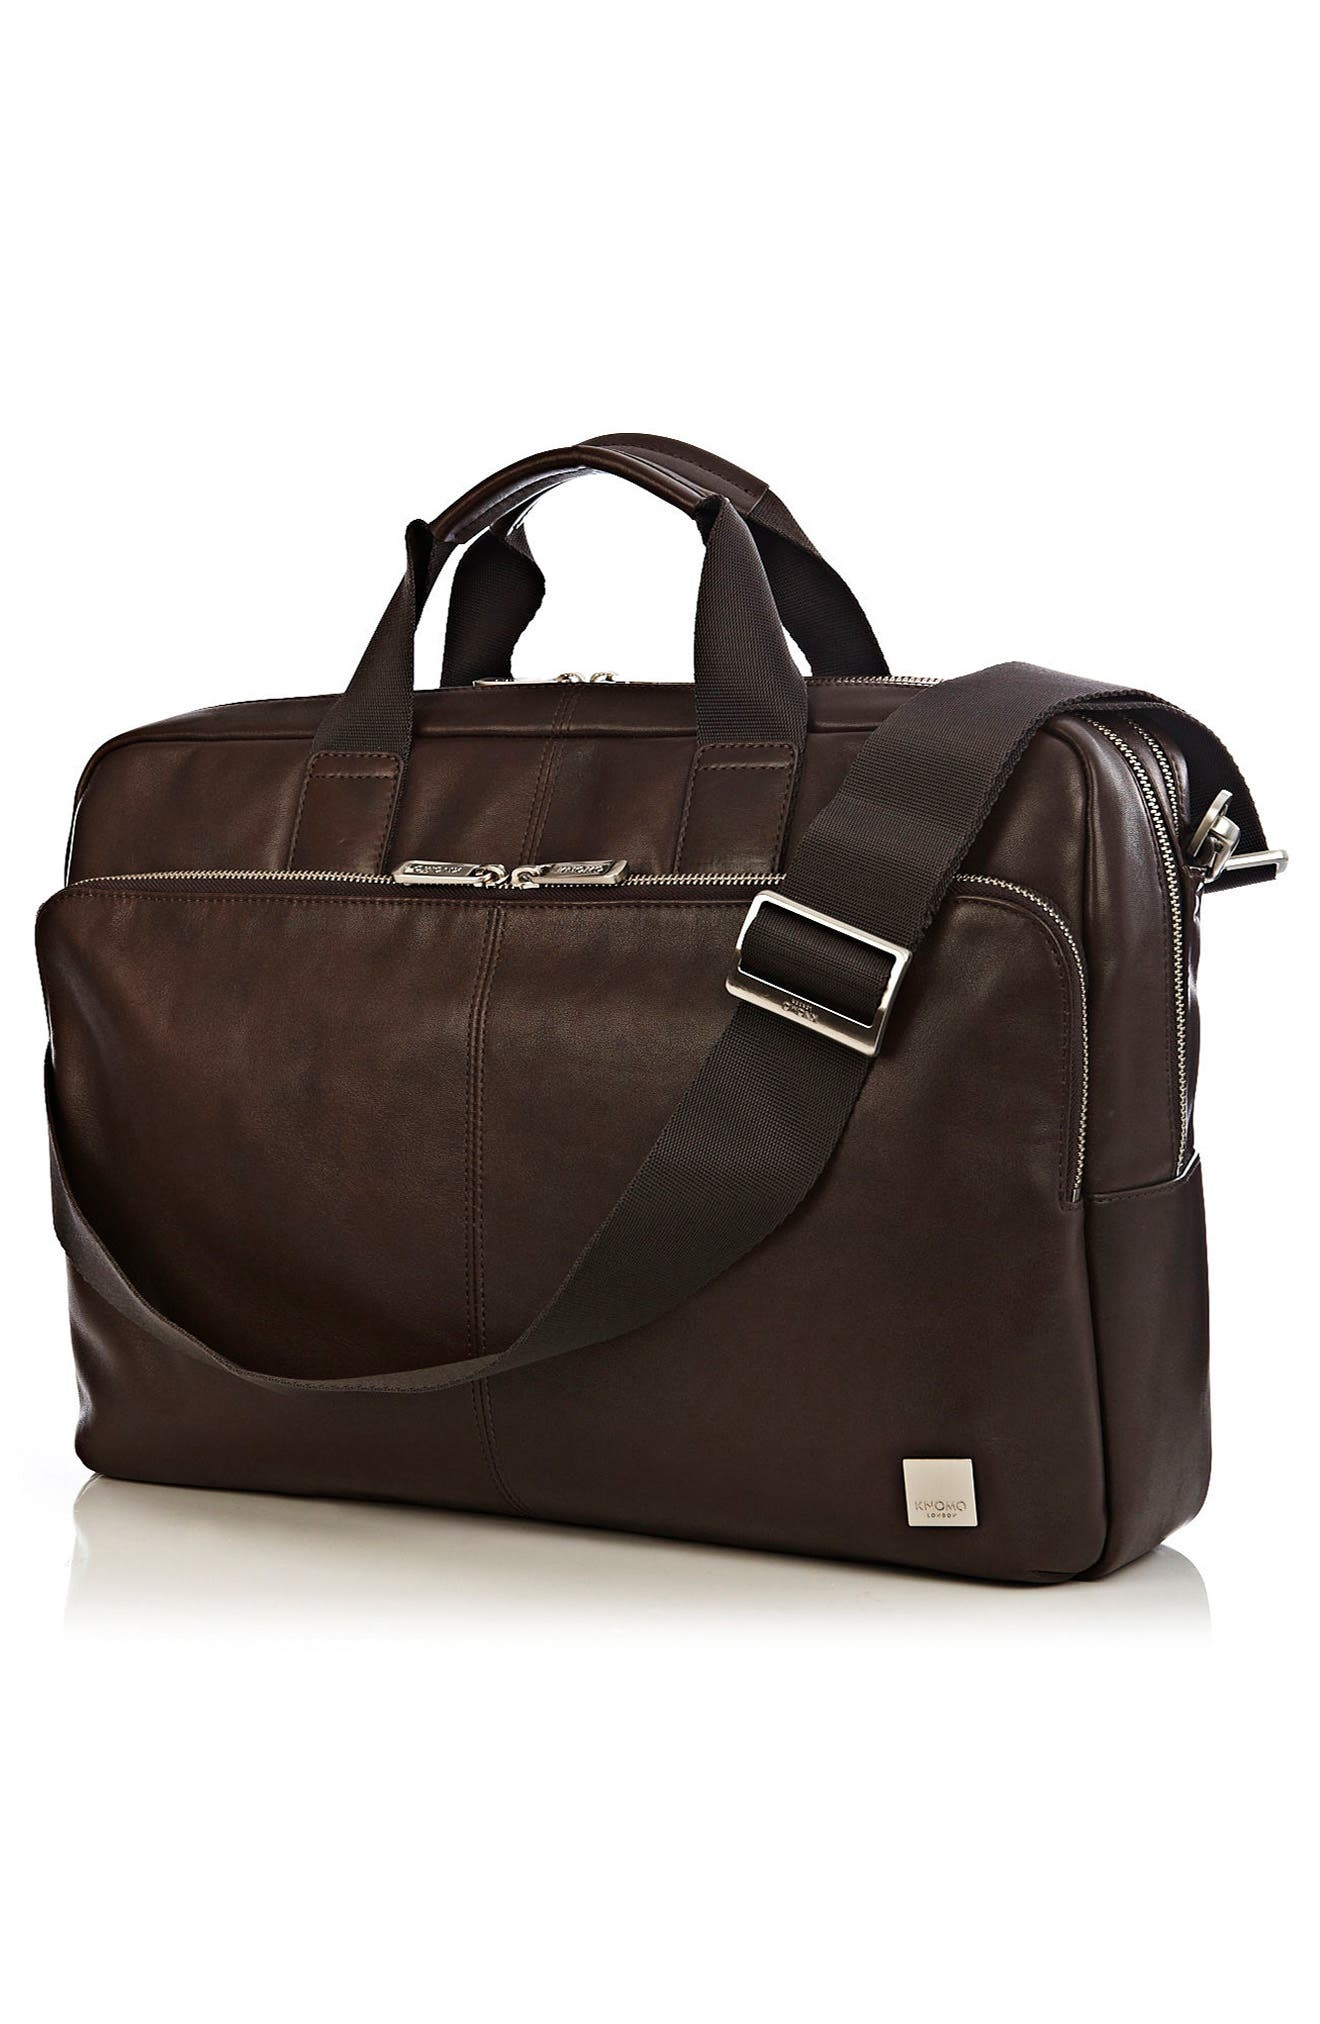 Brompton Amesbury Leather Briefcase,                             Alternate thumbnail 8, color,                             Brown